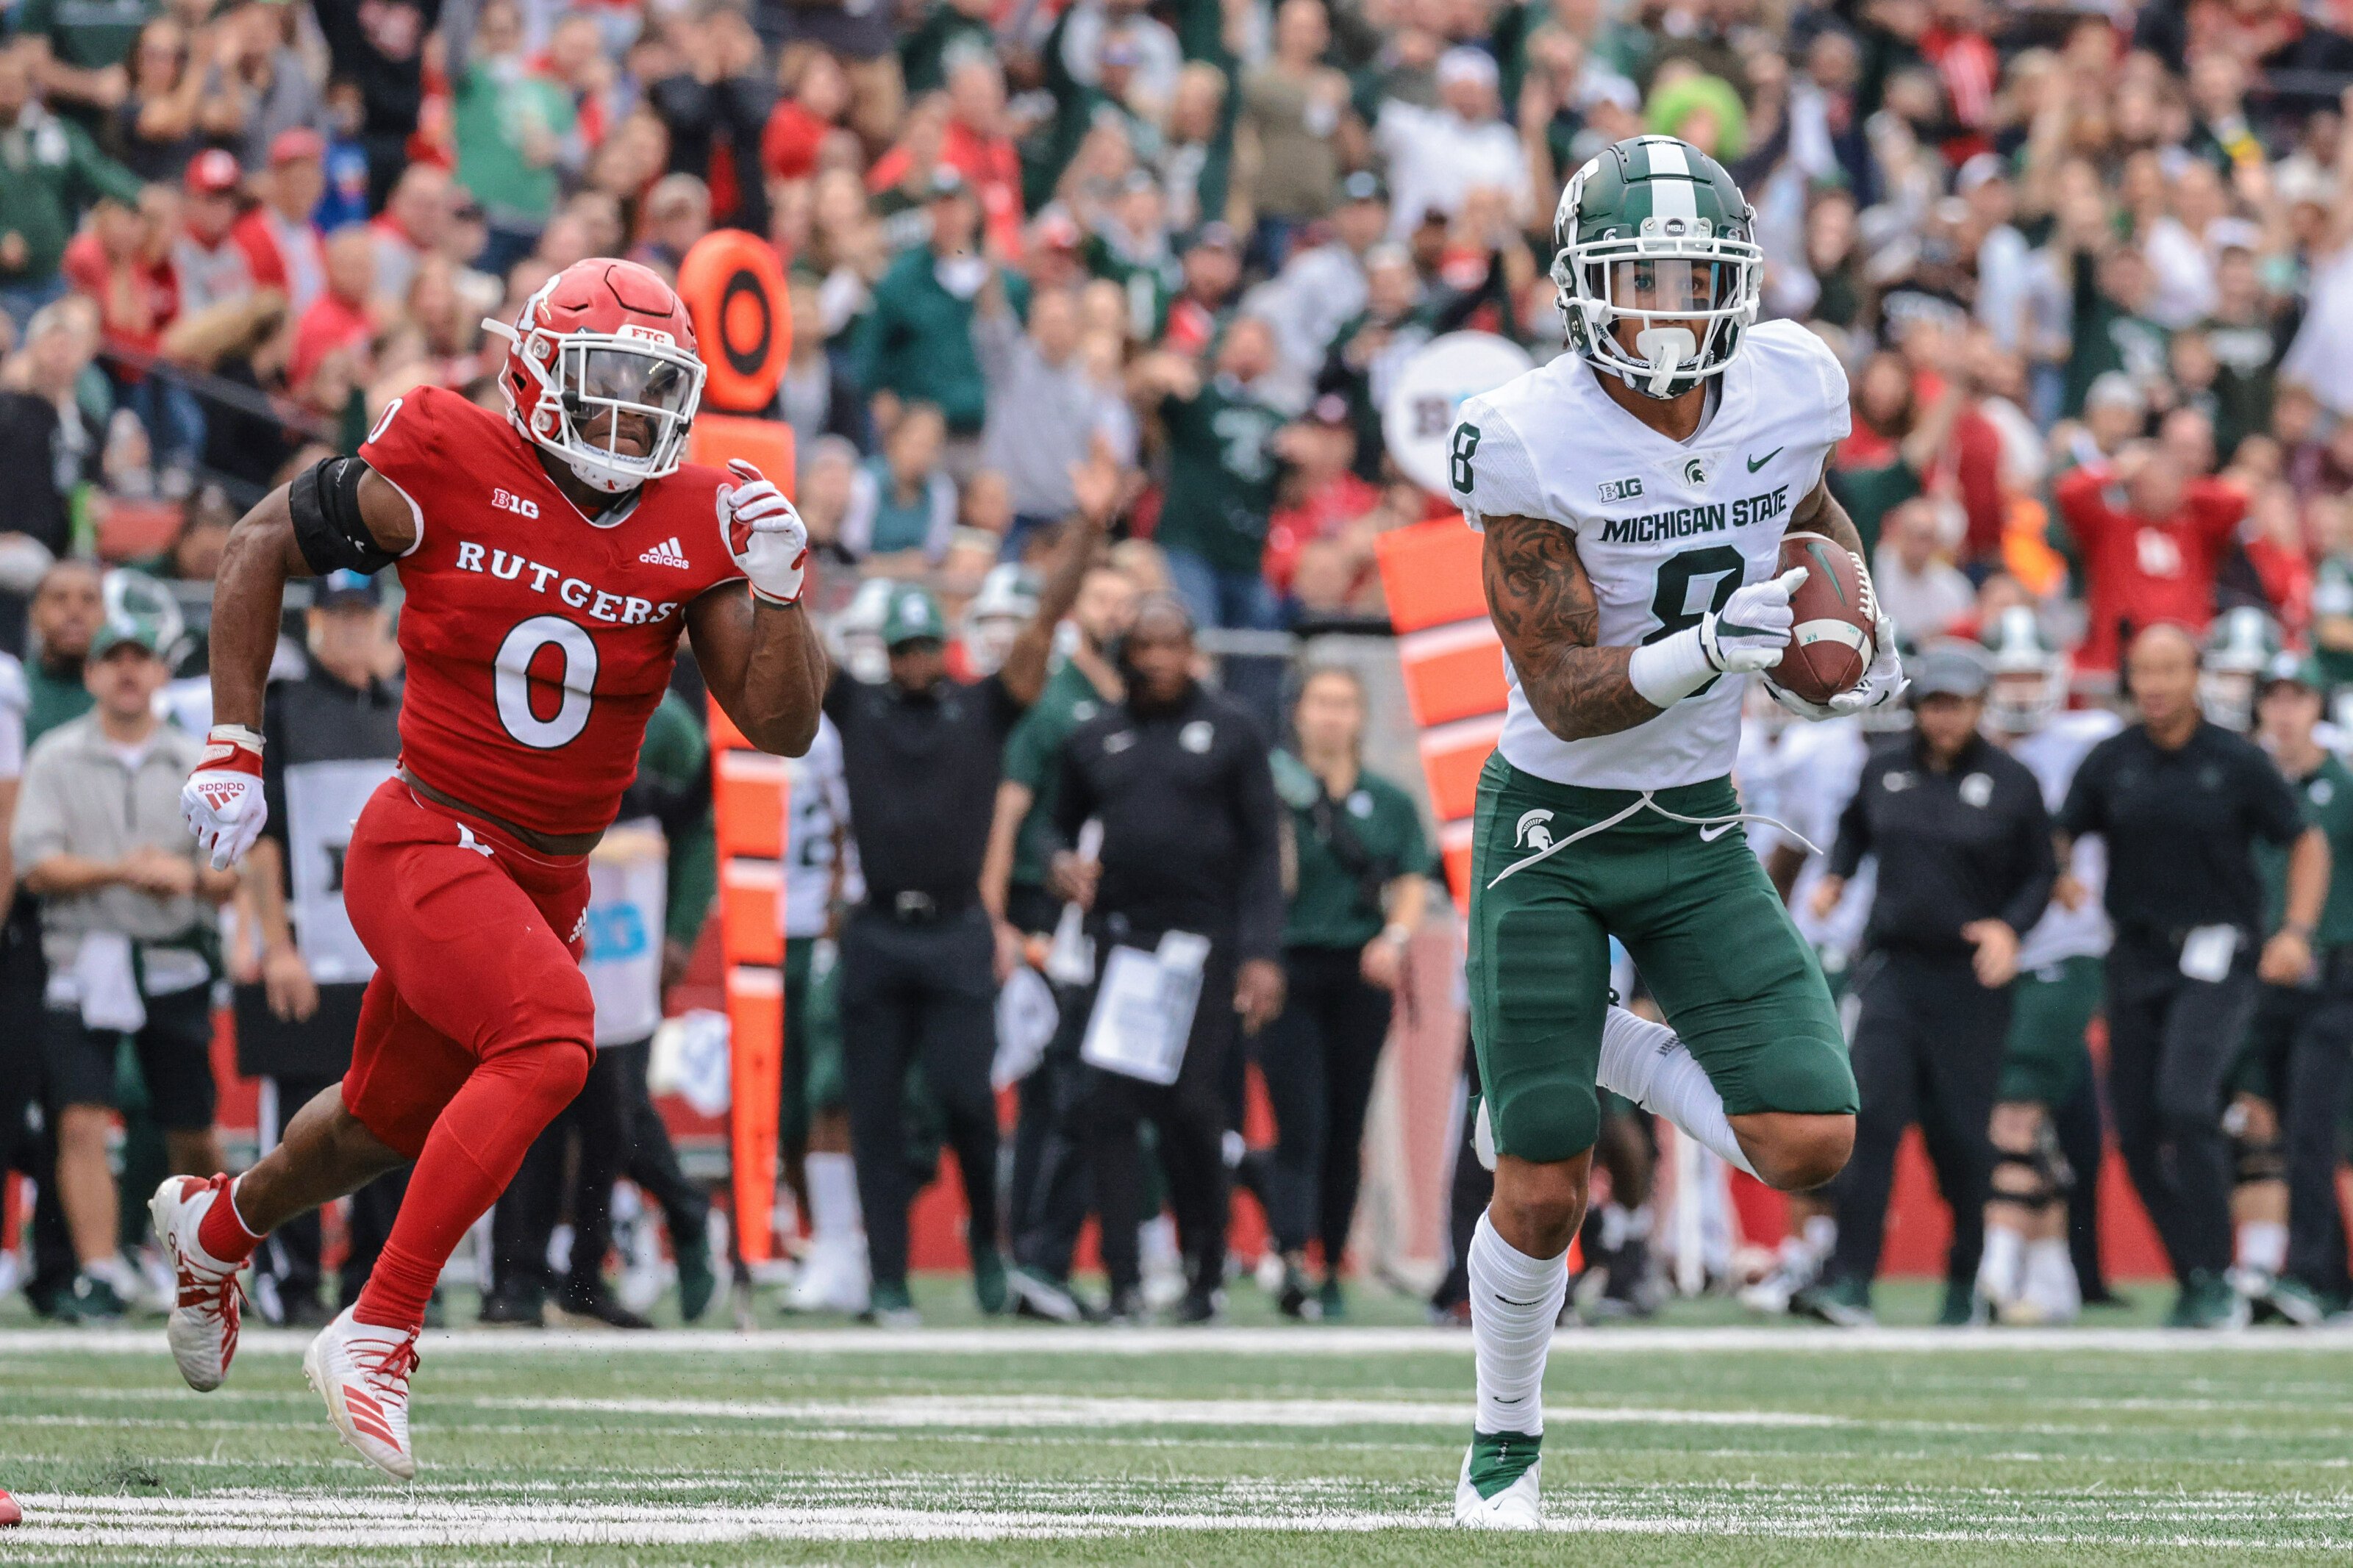 Michigan State Football: 3 takeaways from huge win at Rutgers in Week 6 -  Page 3